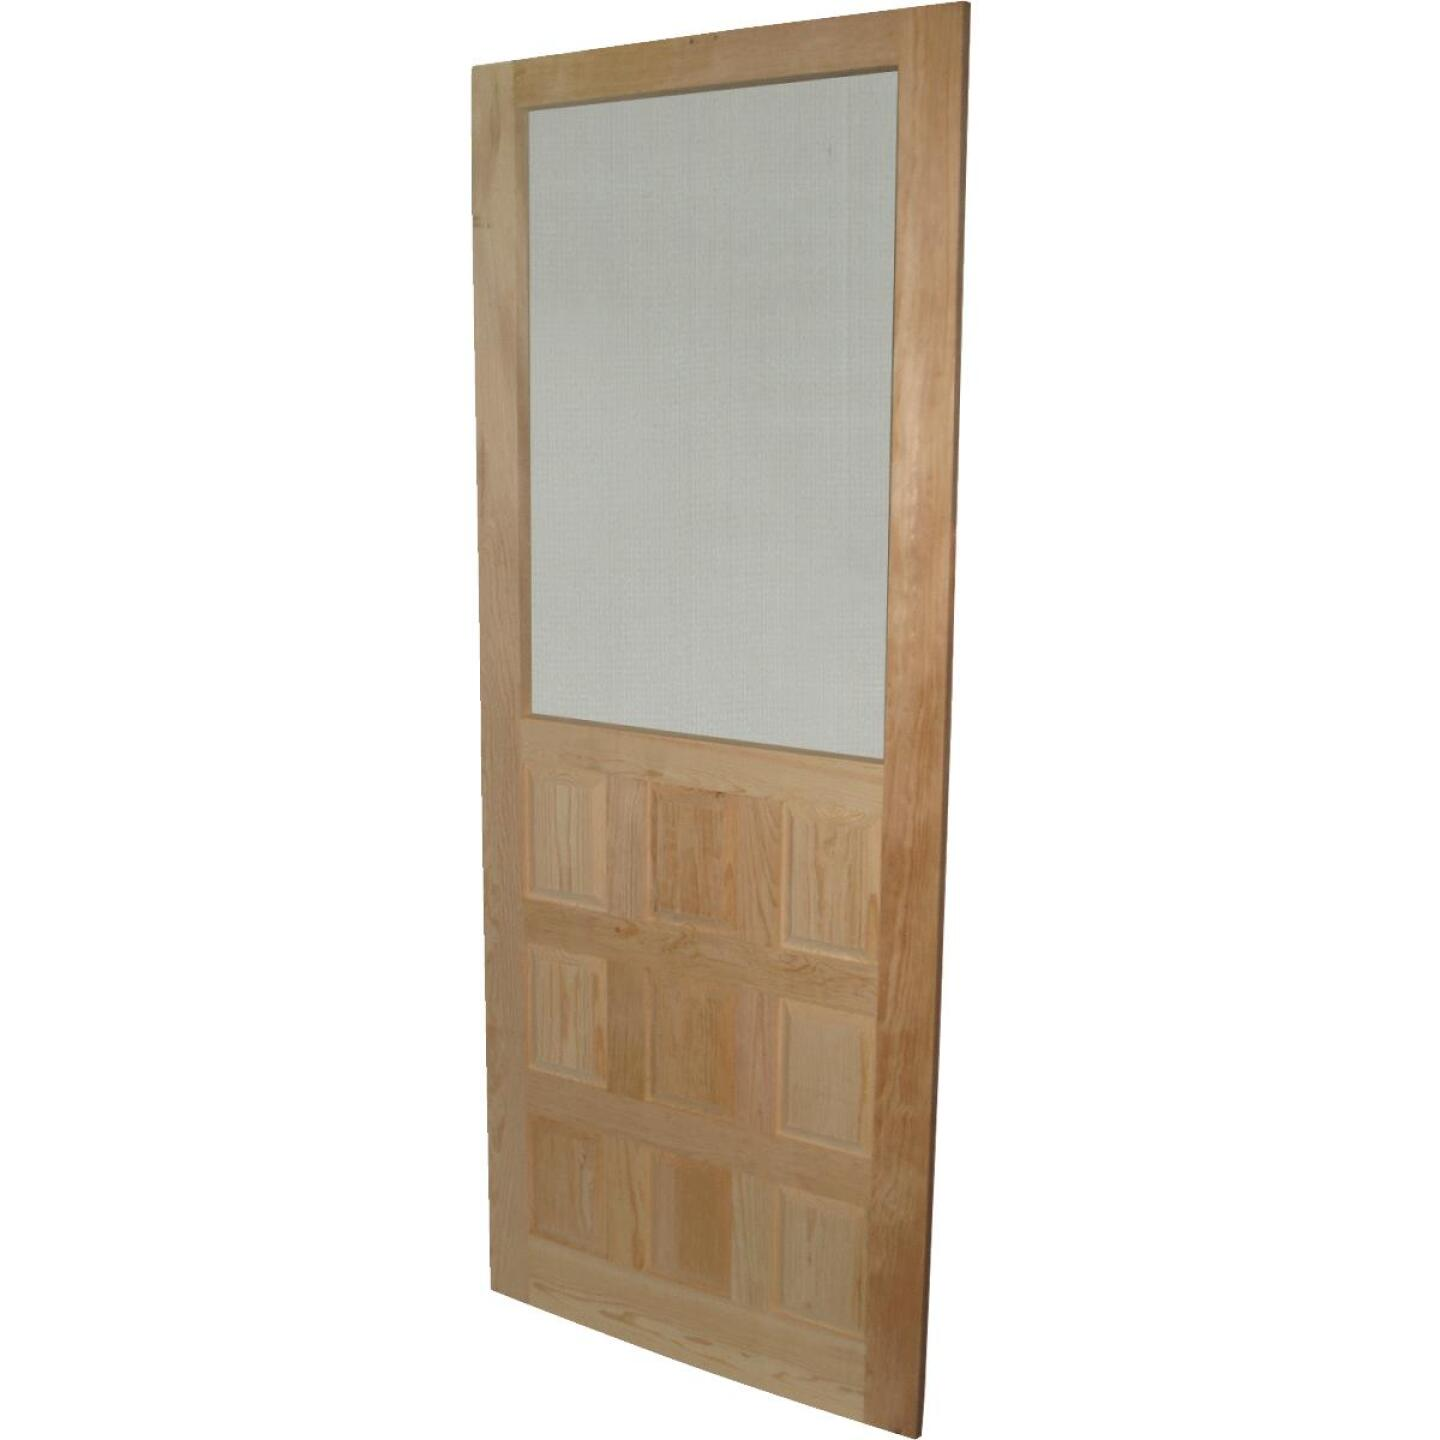 Snavely 32 In. W. x 80 In. H. x 1-1/8 In. Thick Stainable Natural Solid Pine Wood 9-Panel Screen Door Image 1